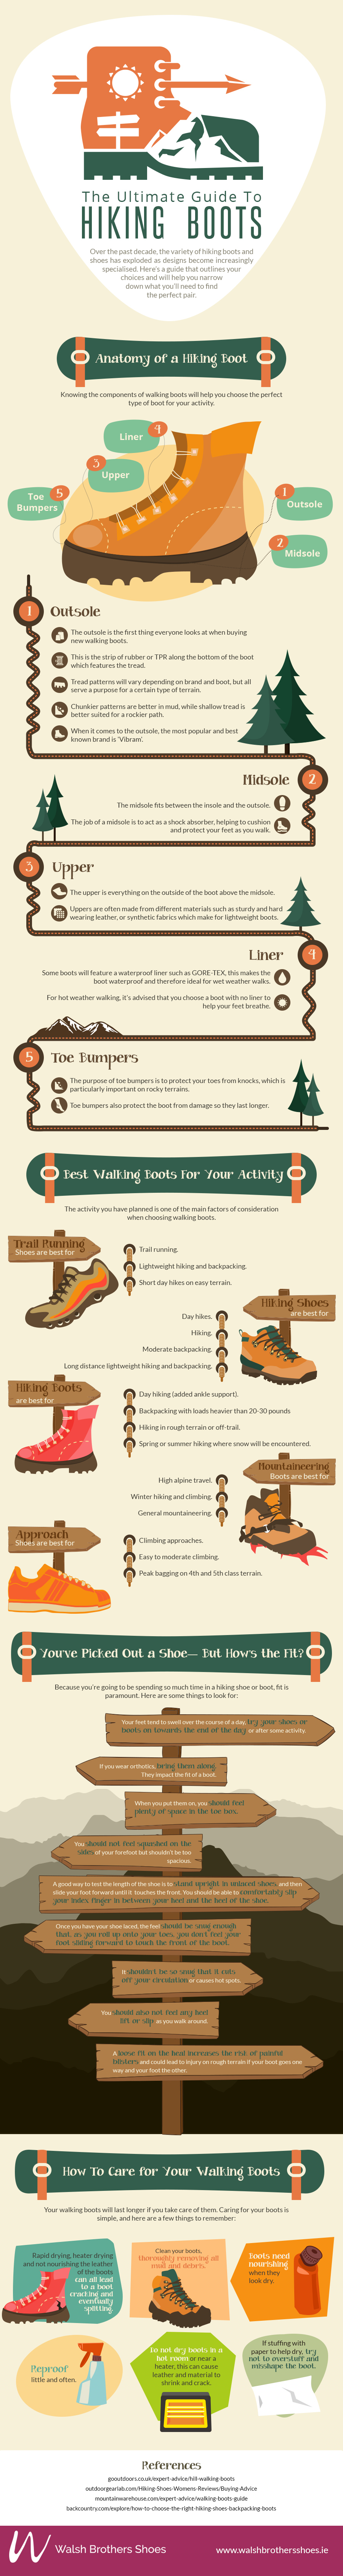 [Infographic] The Ultimate Guide to Choosing the Perfect Hiking Boots